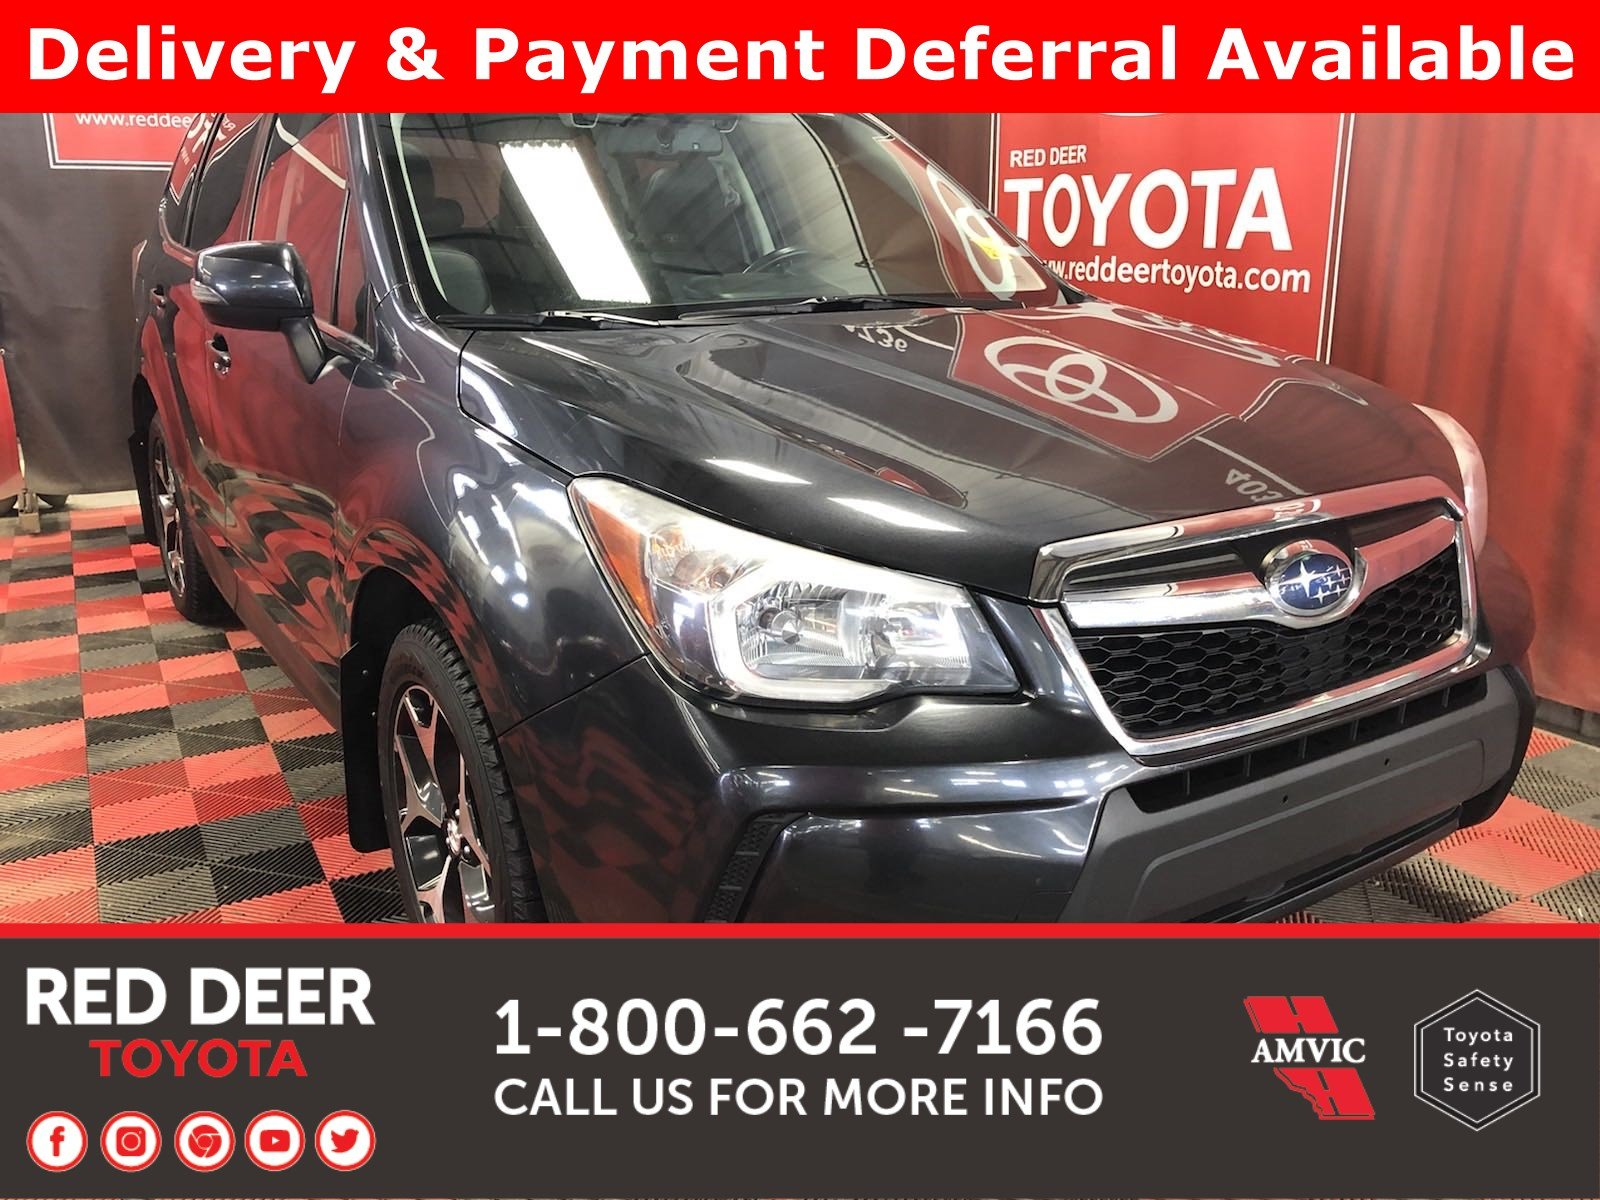 Pre-Owned 2015 Subaru Forester XT Touring w/Tech Pkg - 3 PAYMENTS ON US !